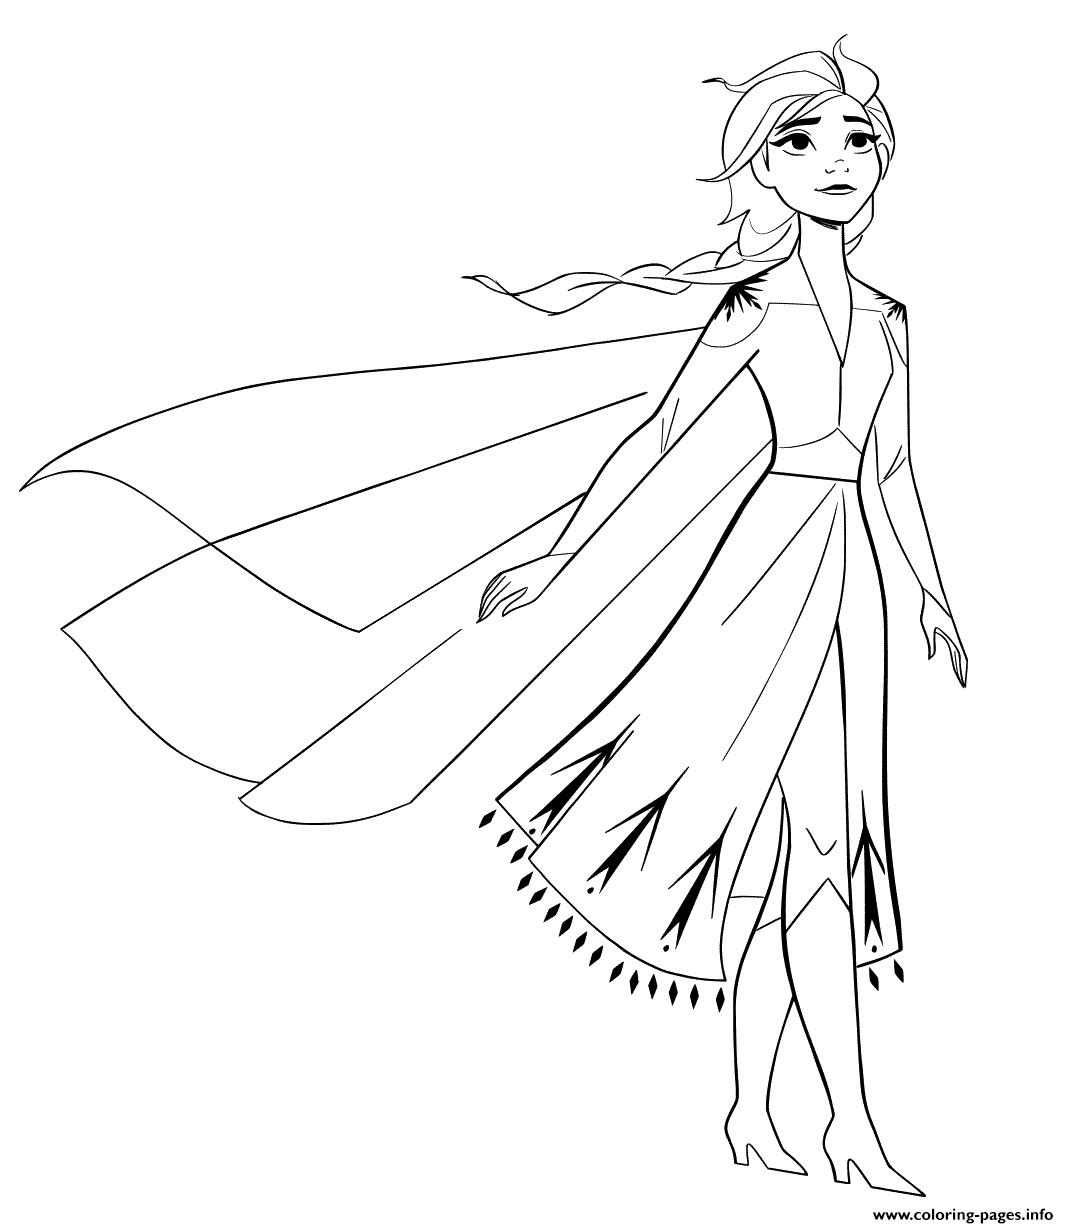 Elsa From New Frozen 2 To Color Coloring Pages Printable